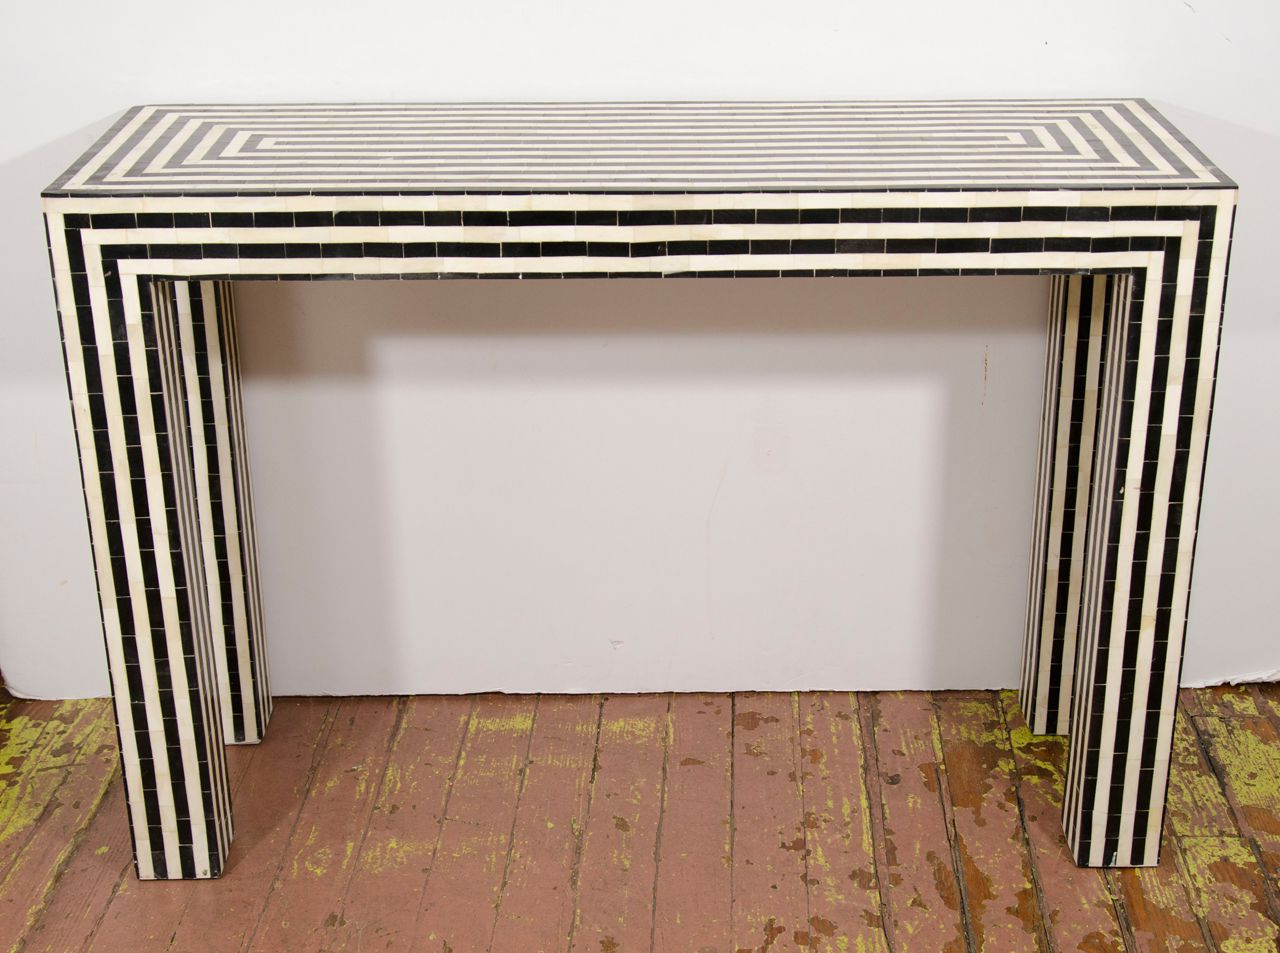 Indian Bone Inlay Black & White Striped Console | Furnishings Throughout Black And White Inlay Console Tables (View 12 of 20)